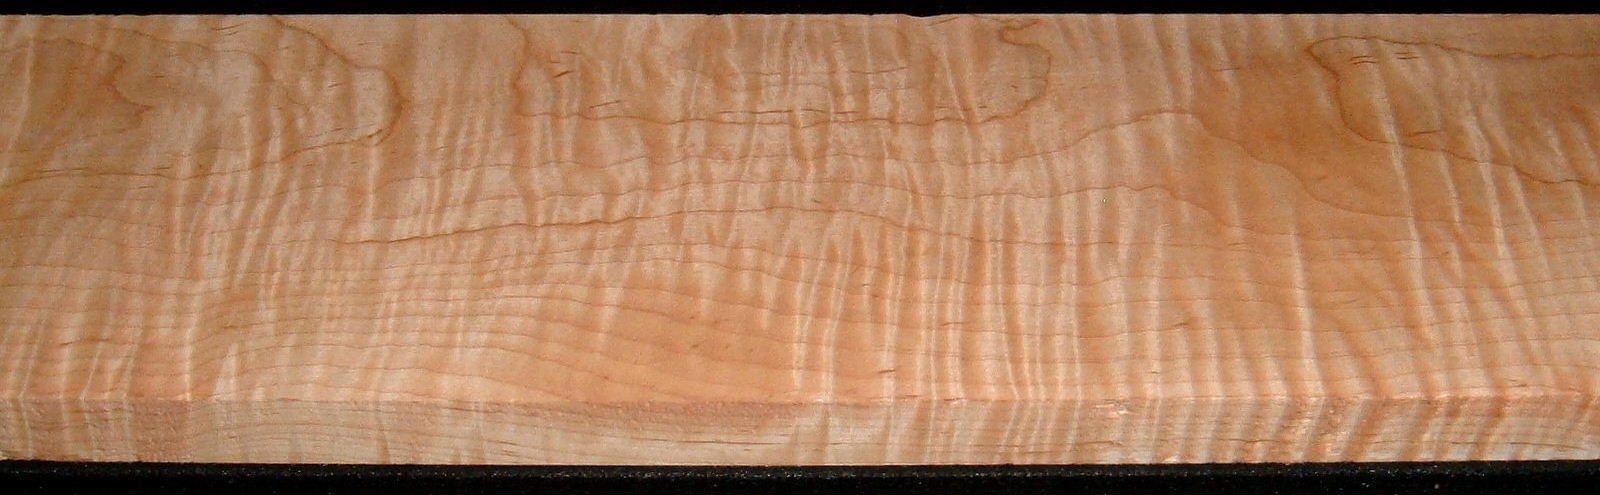 M2007-581,1-1/16x6-1/2x46, Curly Tiger Maple